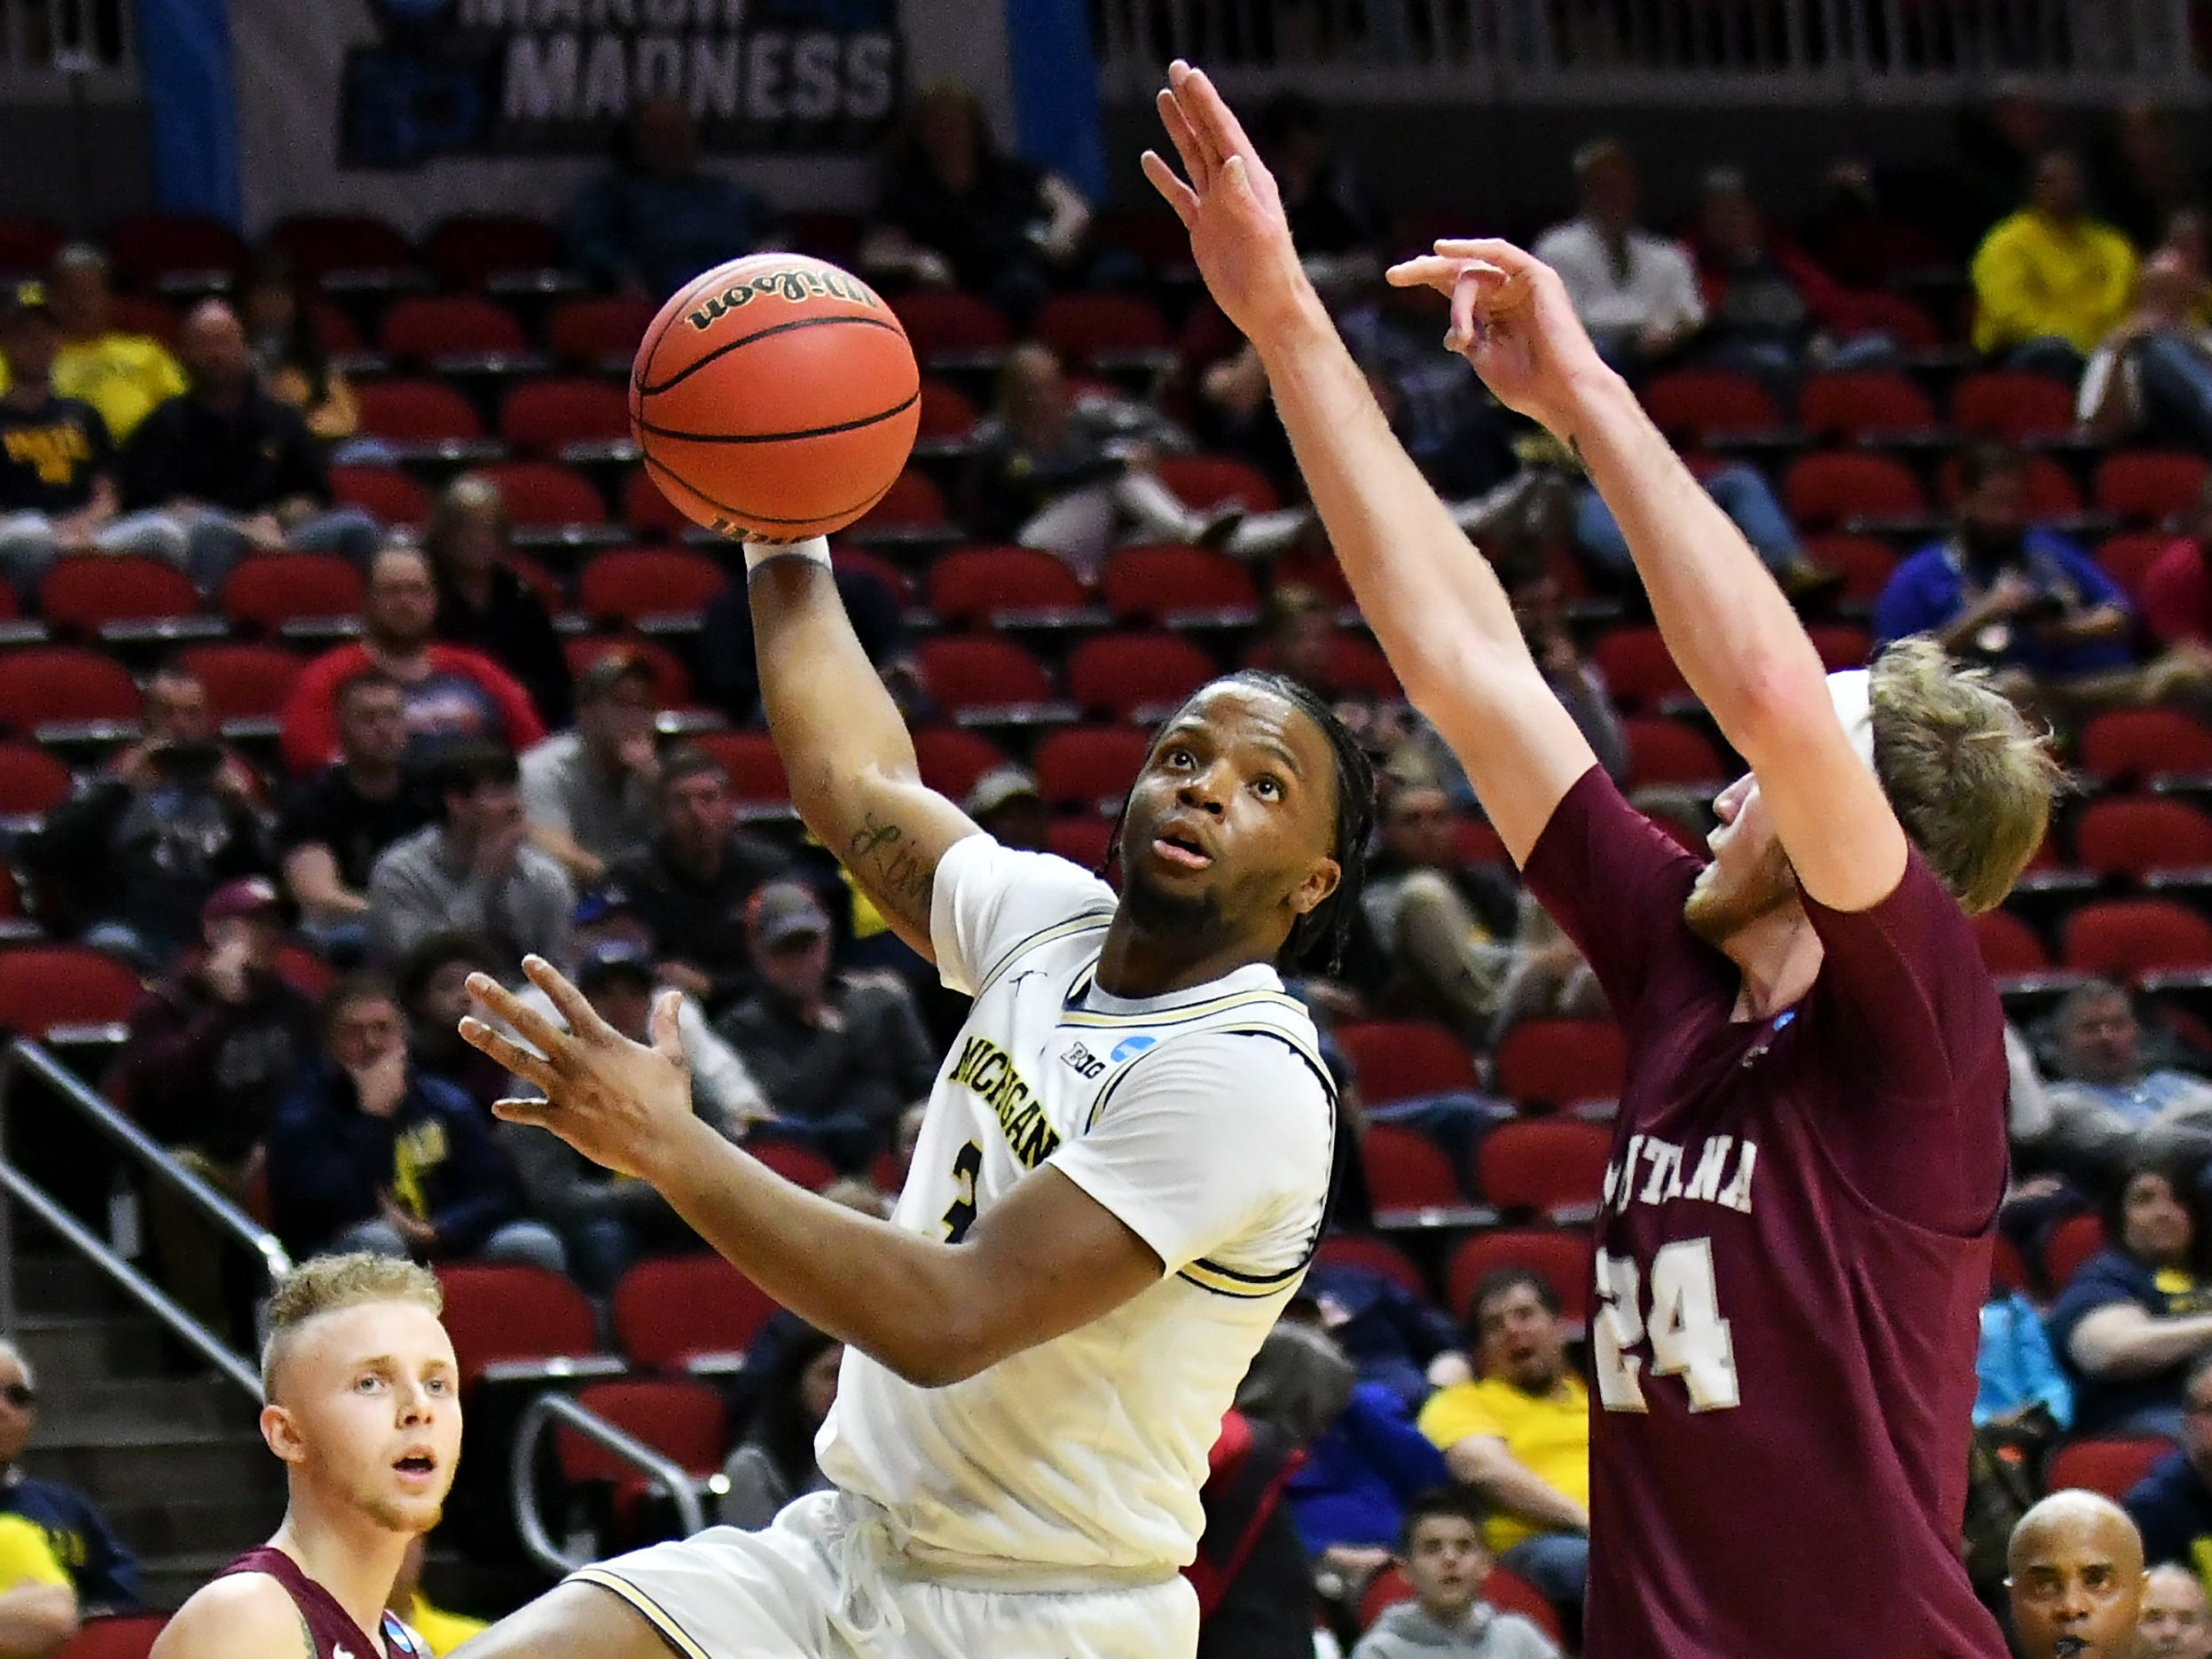 Montana guard Bobby Moorehead (24) defends a hook shot by Michigan guard Zavier Simpson (3) in the second half.